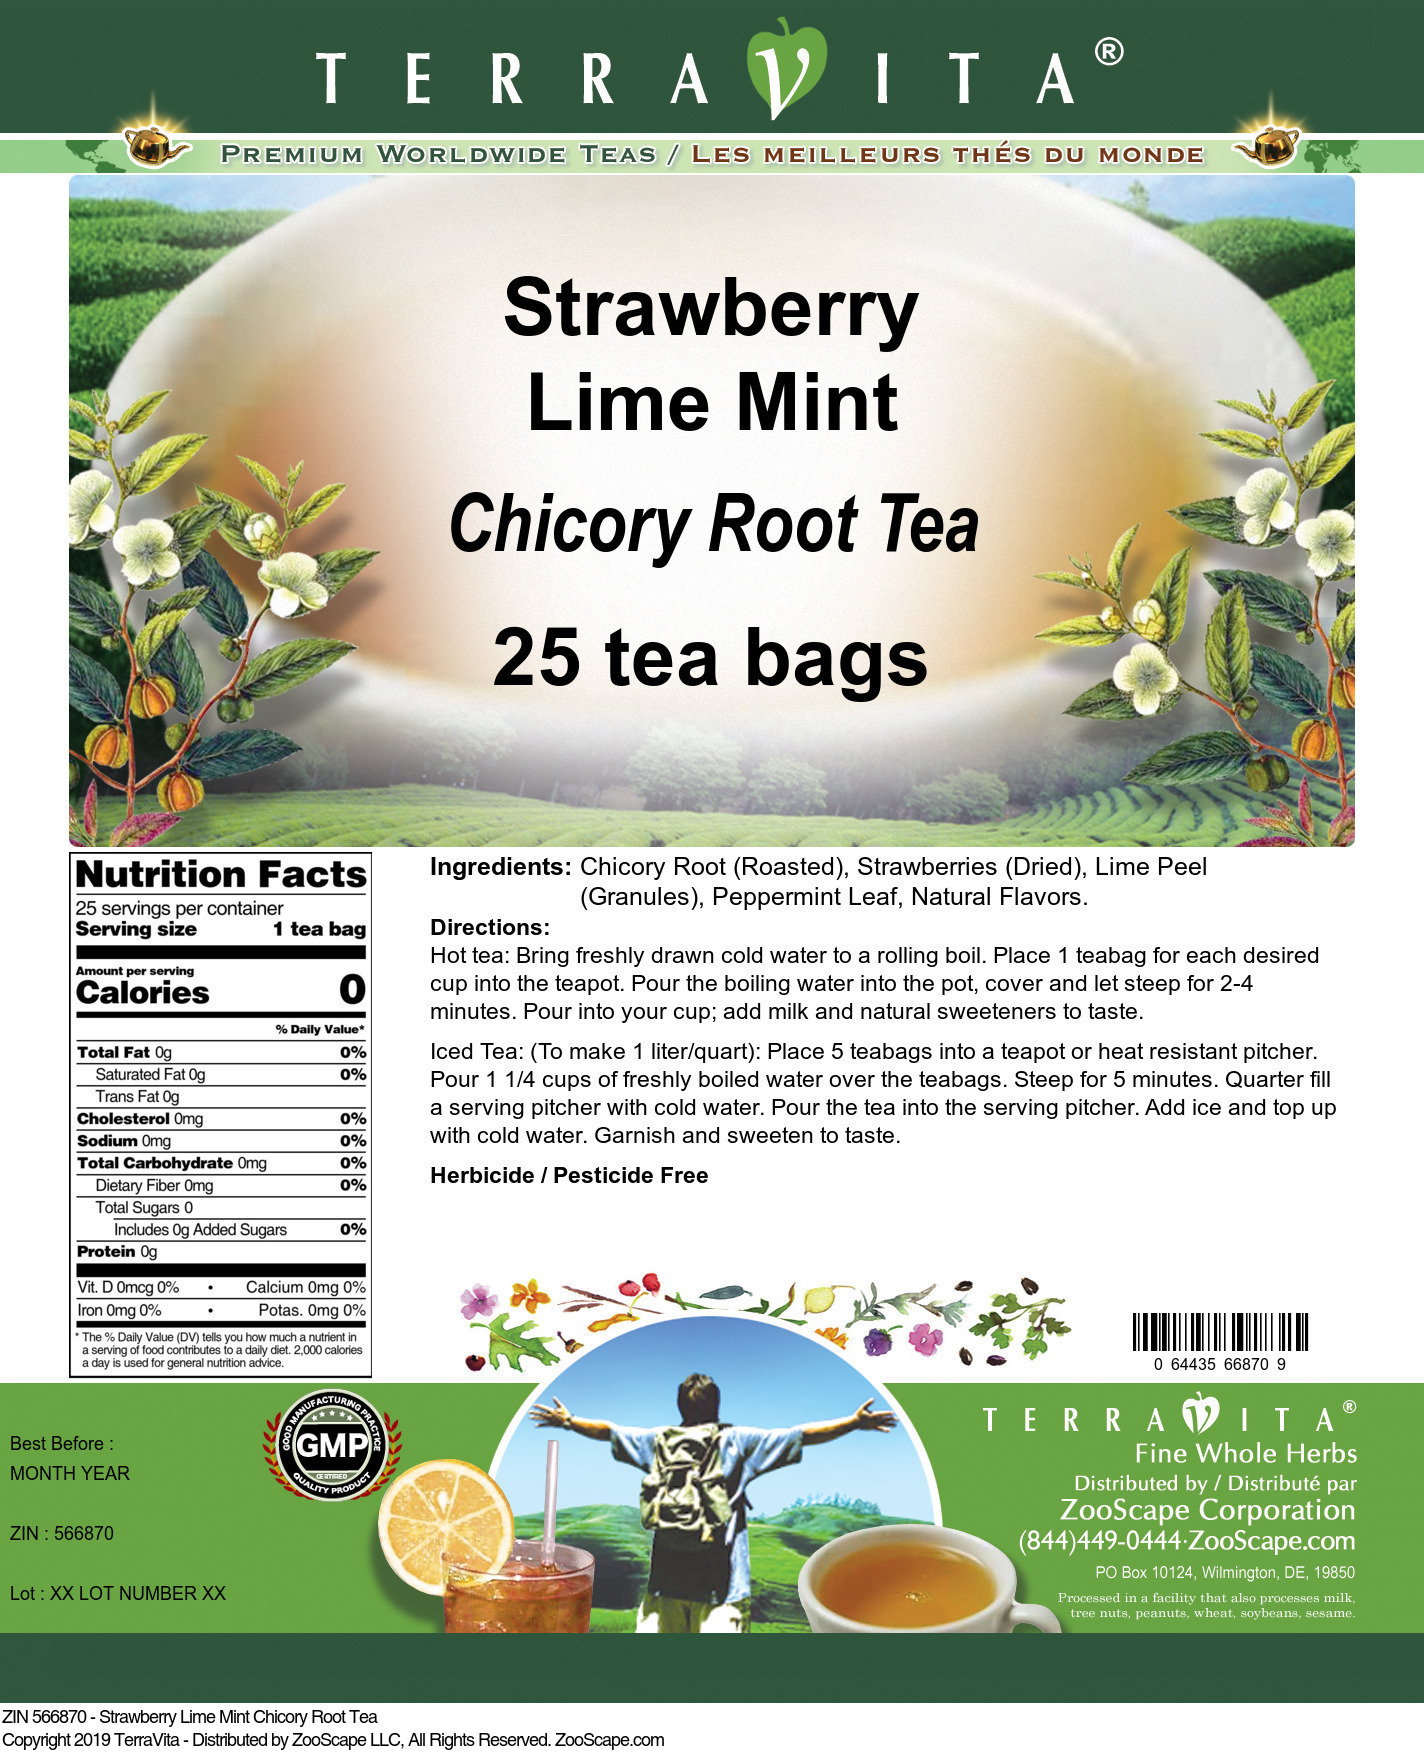 Strawberry Lime Mint Chicory Root